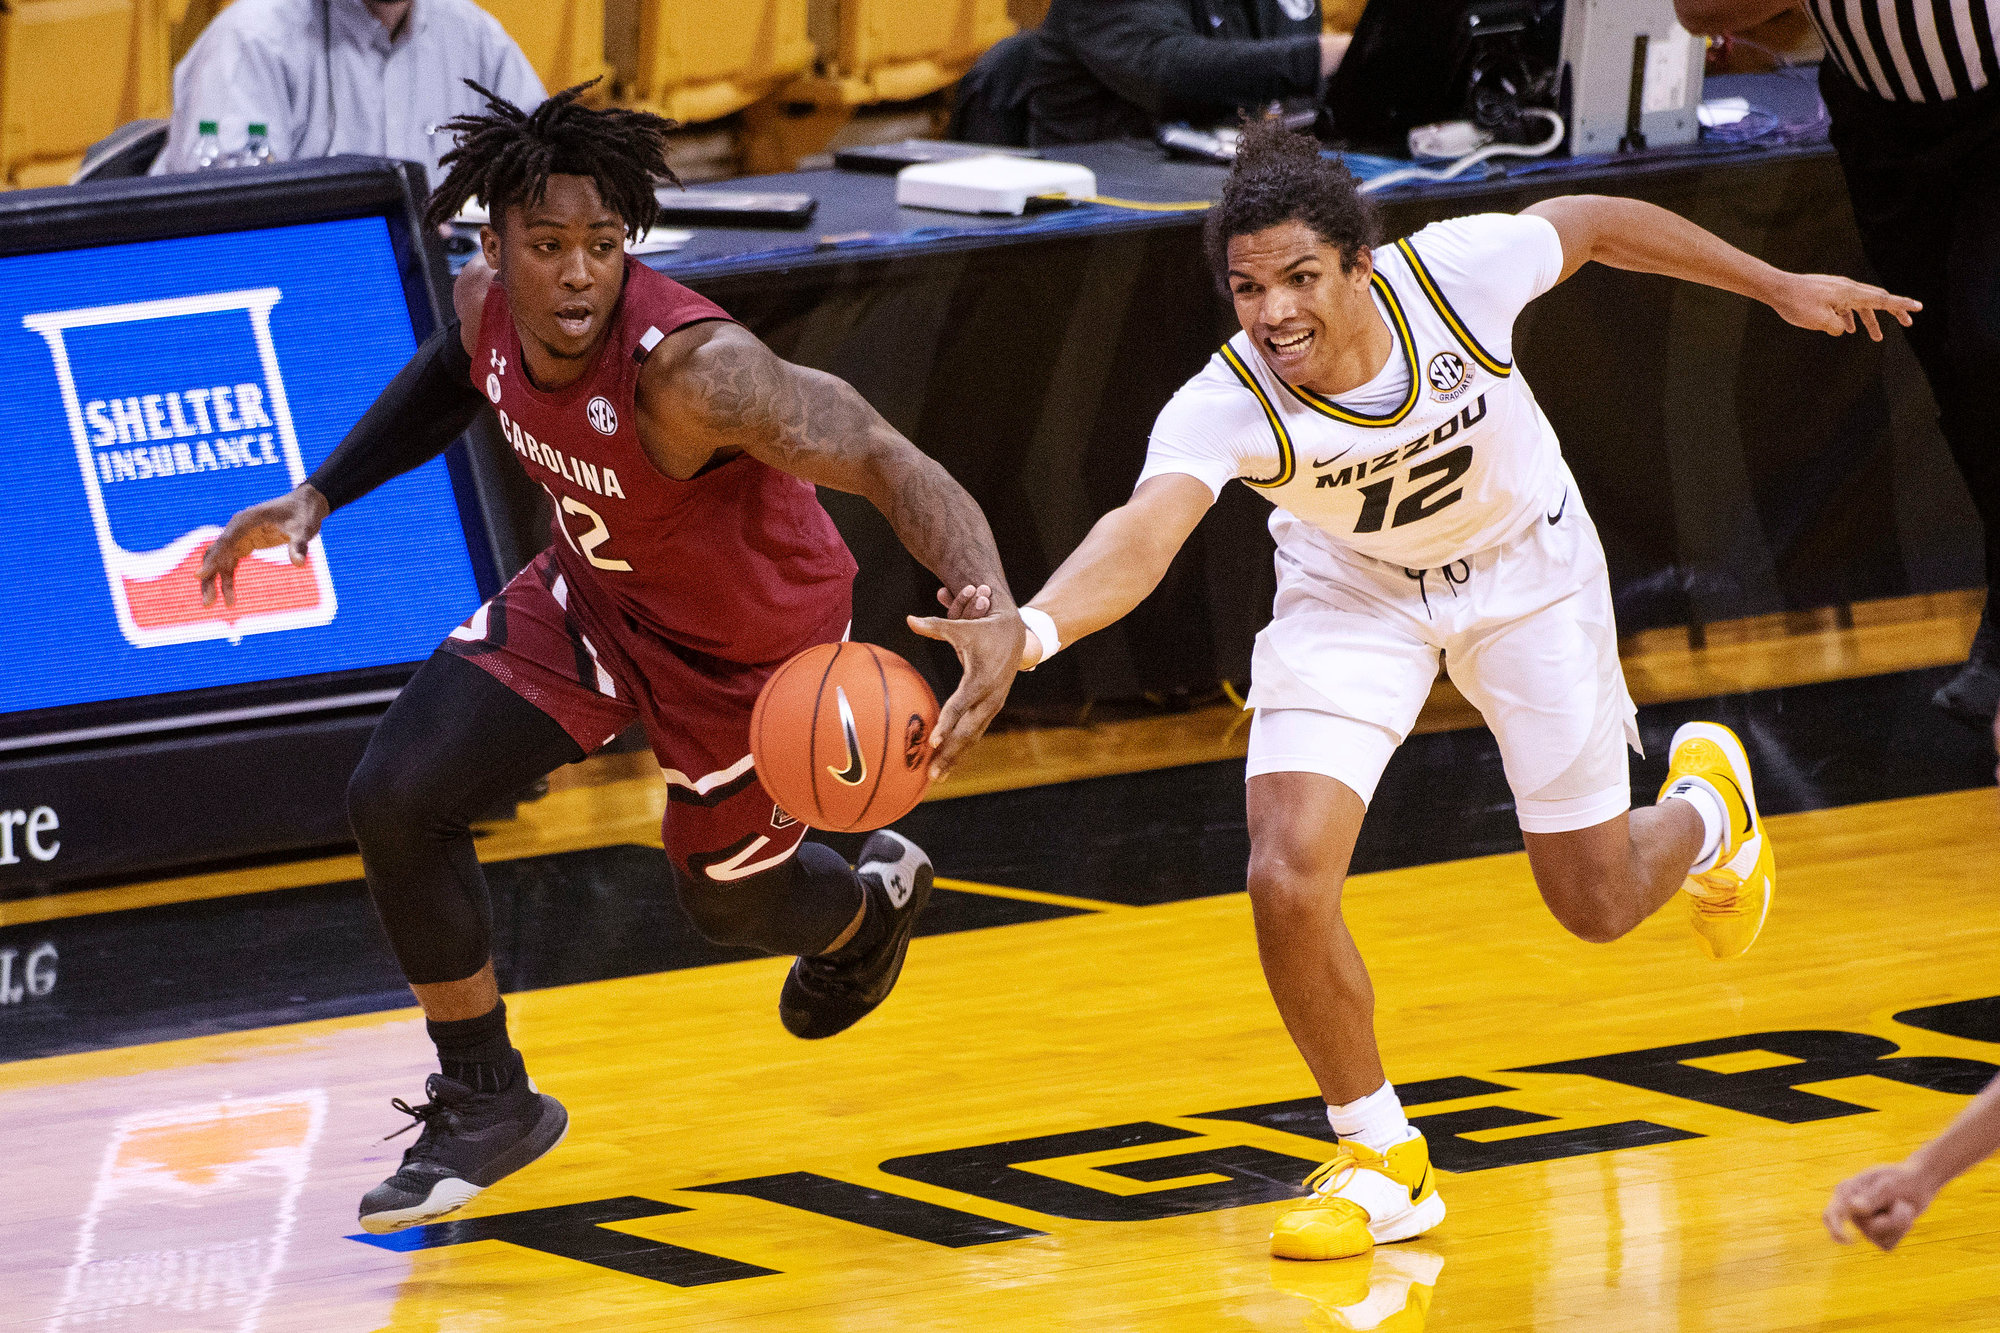 South Carolina's Trae Hannibal, left, and Missouri's Dru Smith, right, battle for a loose ball during the the Gamecocks' 81-70 loss on Tuesday in Columbia, Missouri.